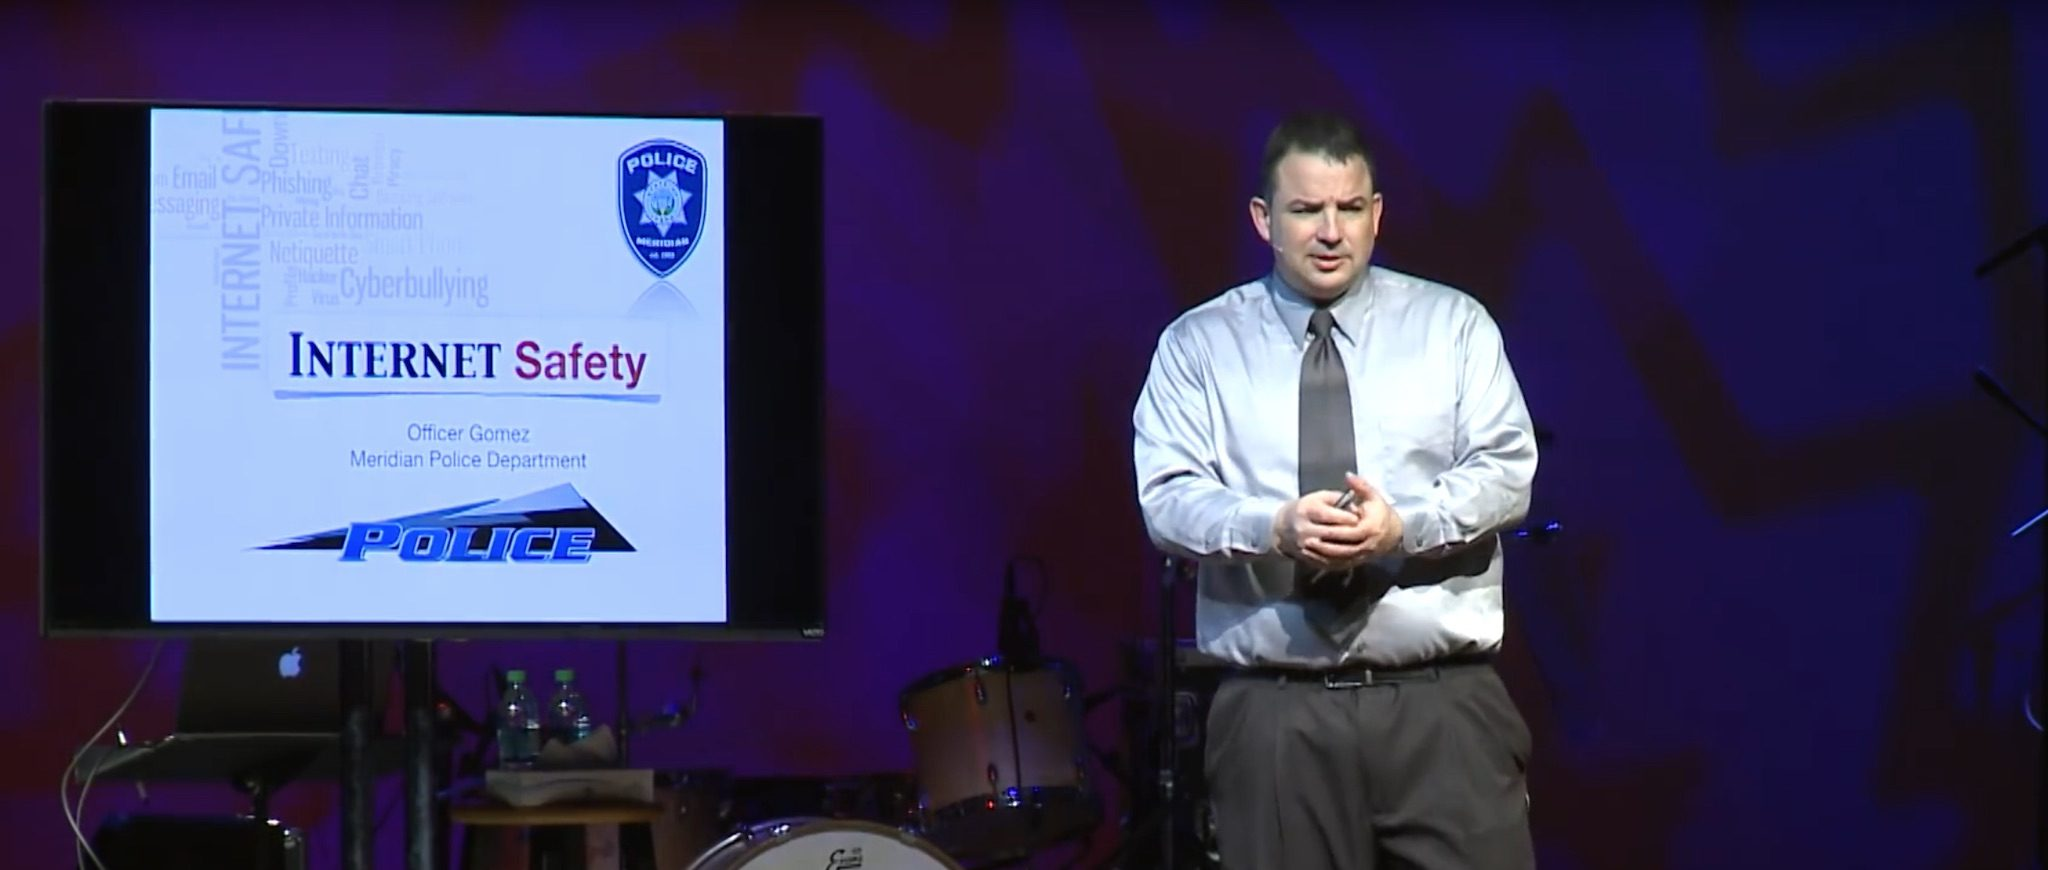 Internet Safety Advice for Parents, from a Police Officer